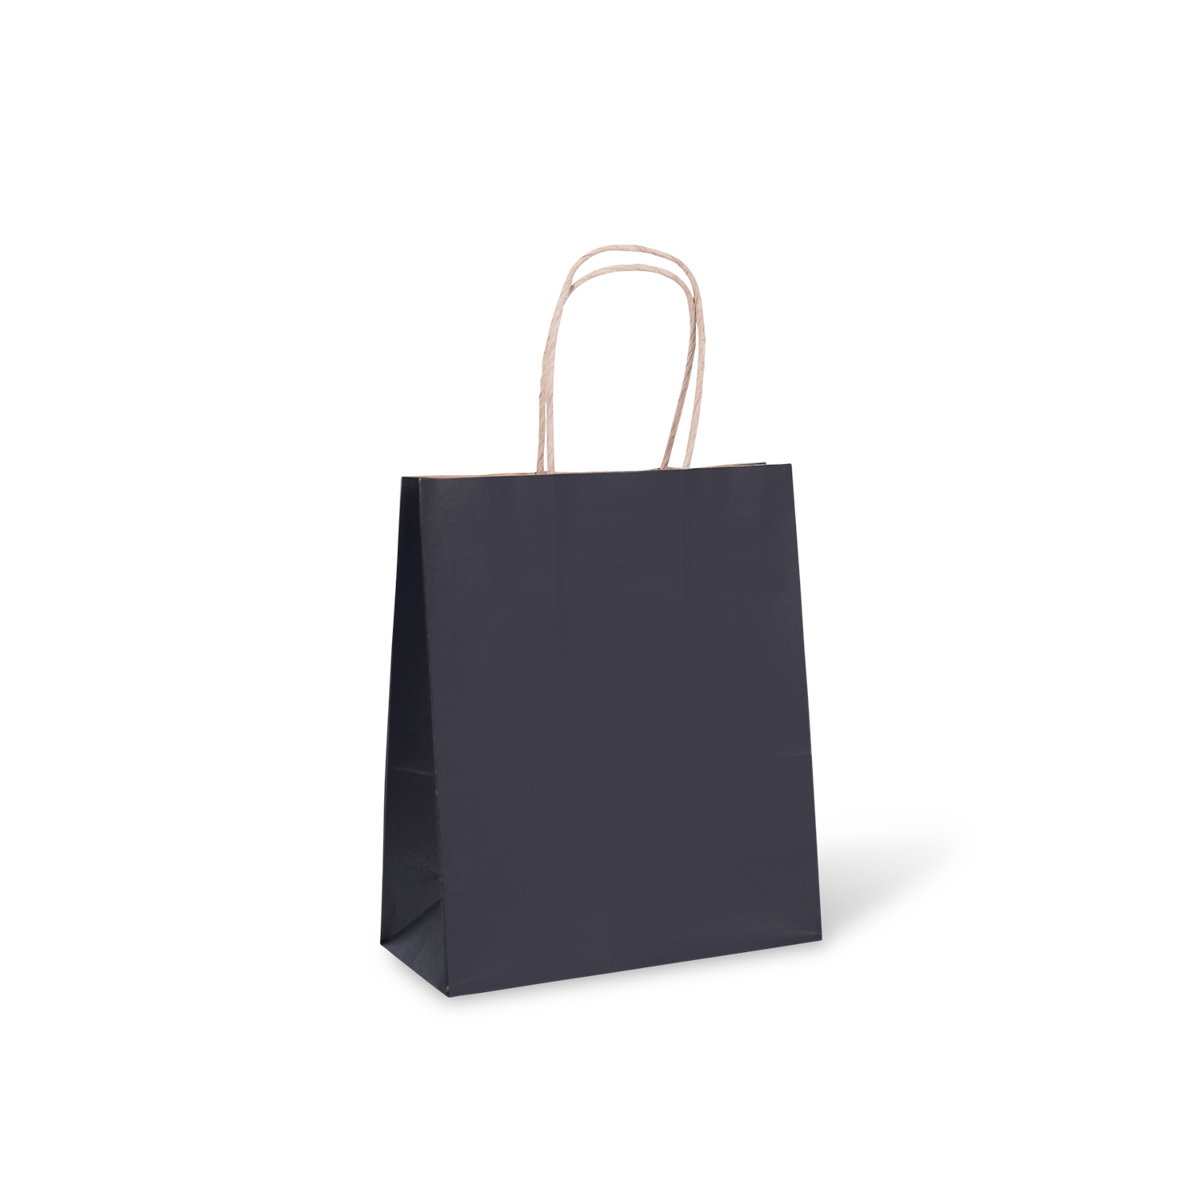 8 Extra Small Petite Paper Twist Handle Bag Black 215mm X